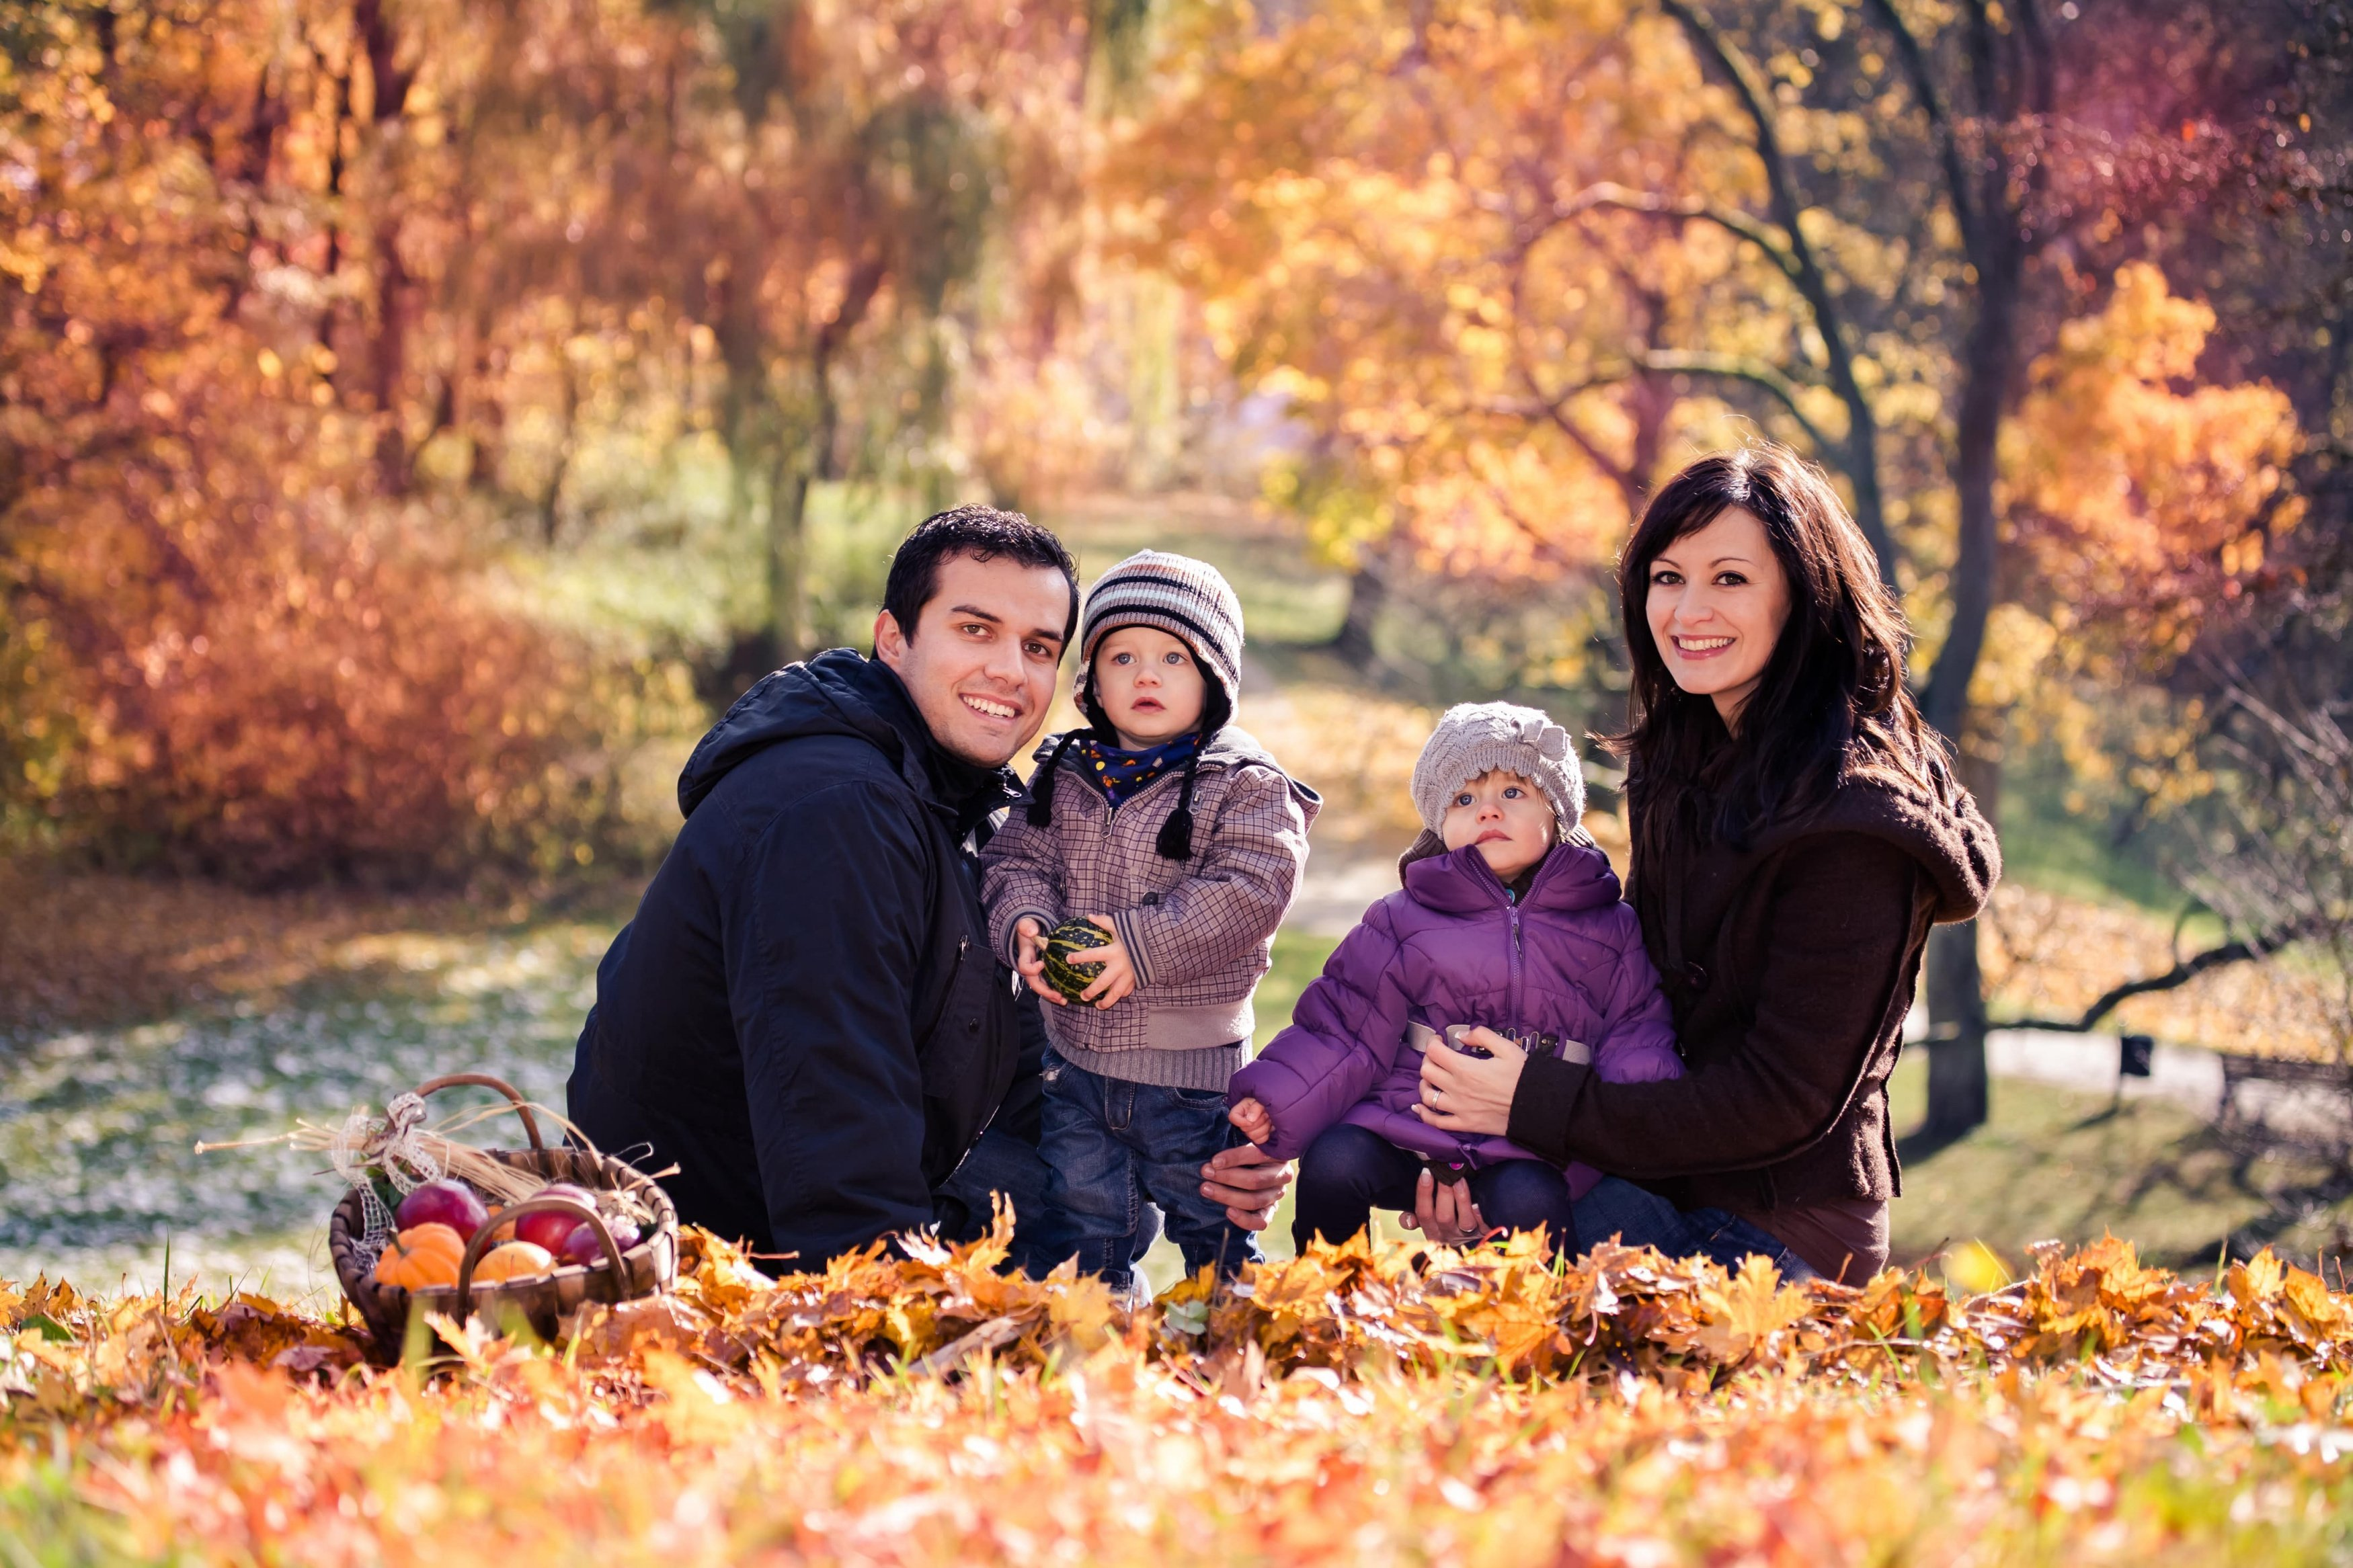 Create Heartwarming Family Portraits Worth Printing Out Image2